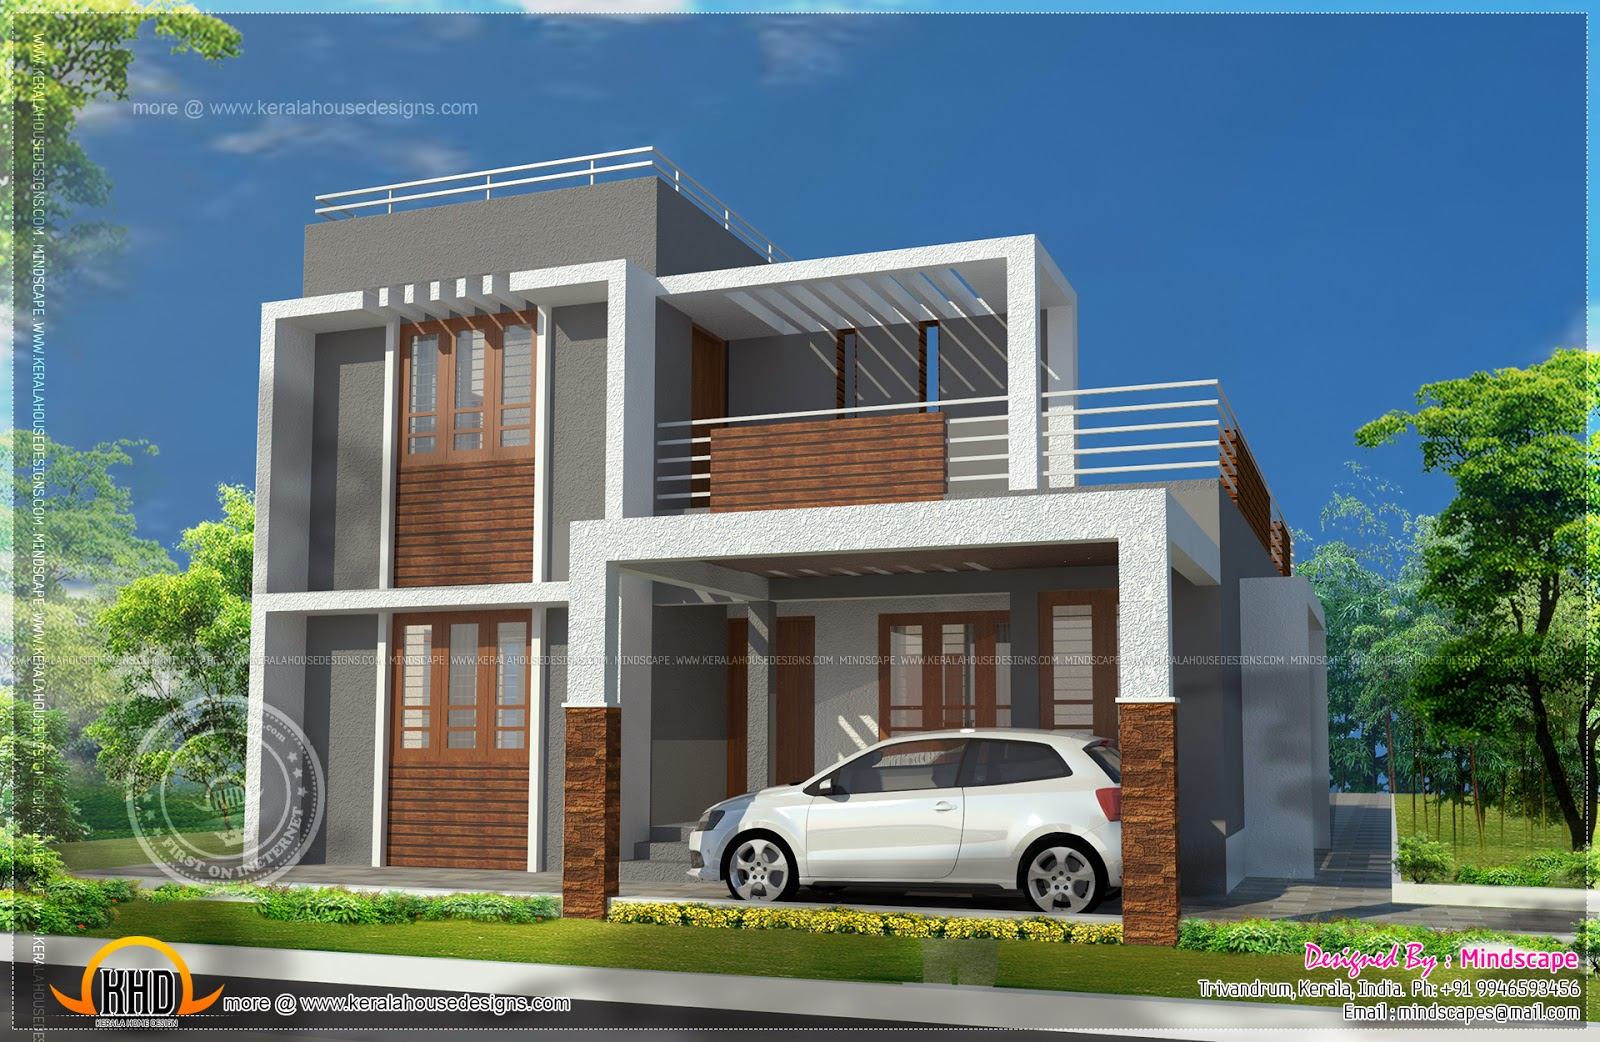 small contemporary home small simple home pic modern flat roof modern house,Small Modern House Plans Flat Roof